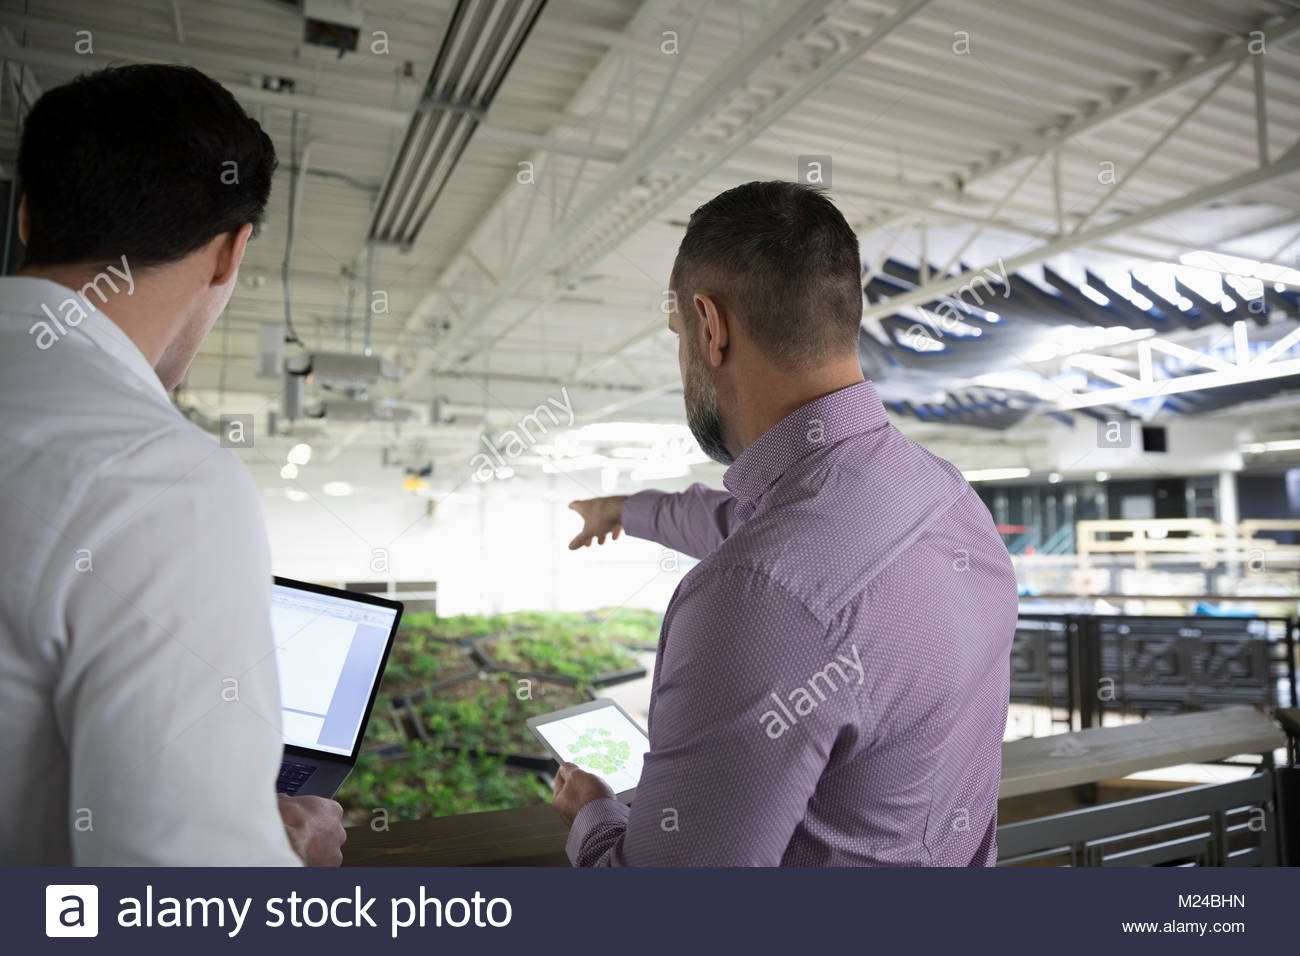 Botanists discussing rooftop garden experiment in laboratory - Stock Image